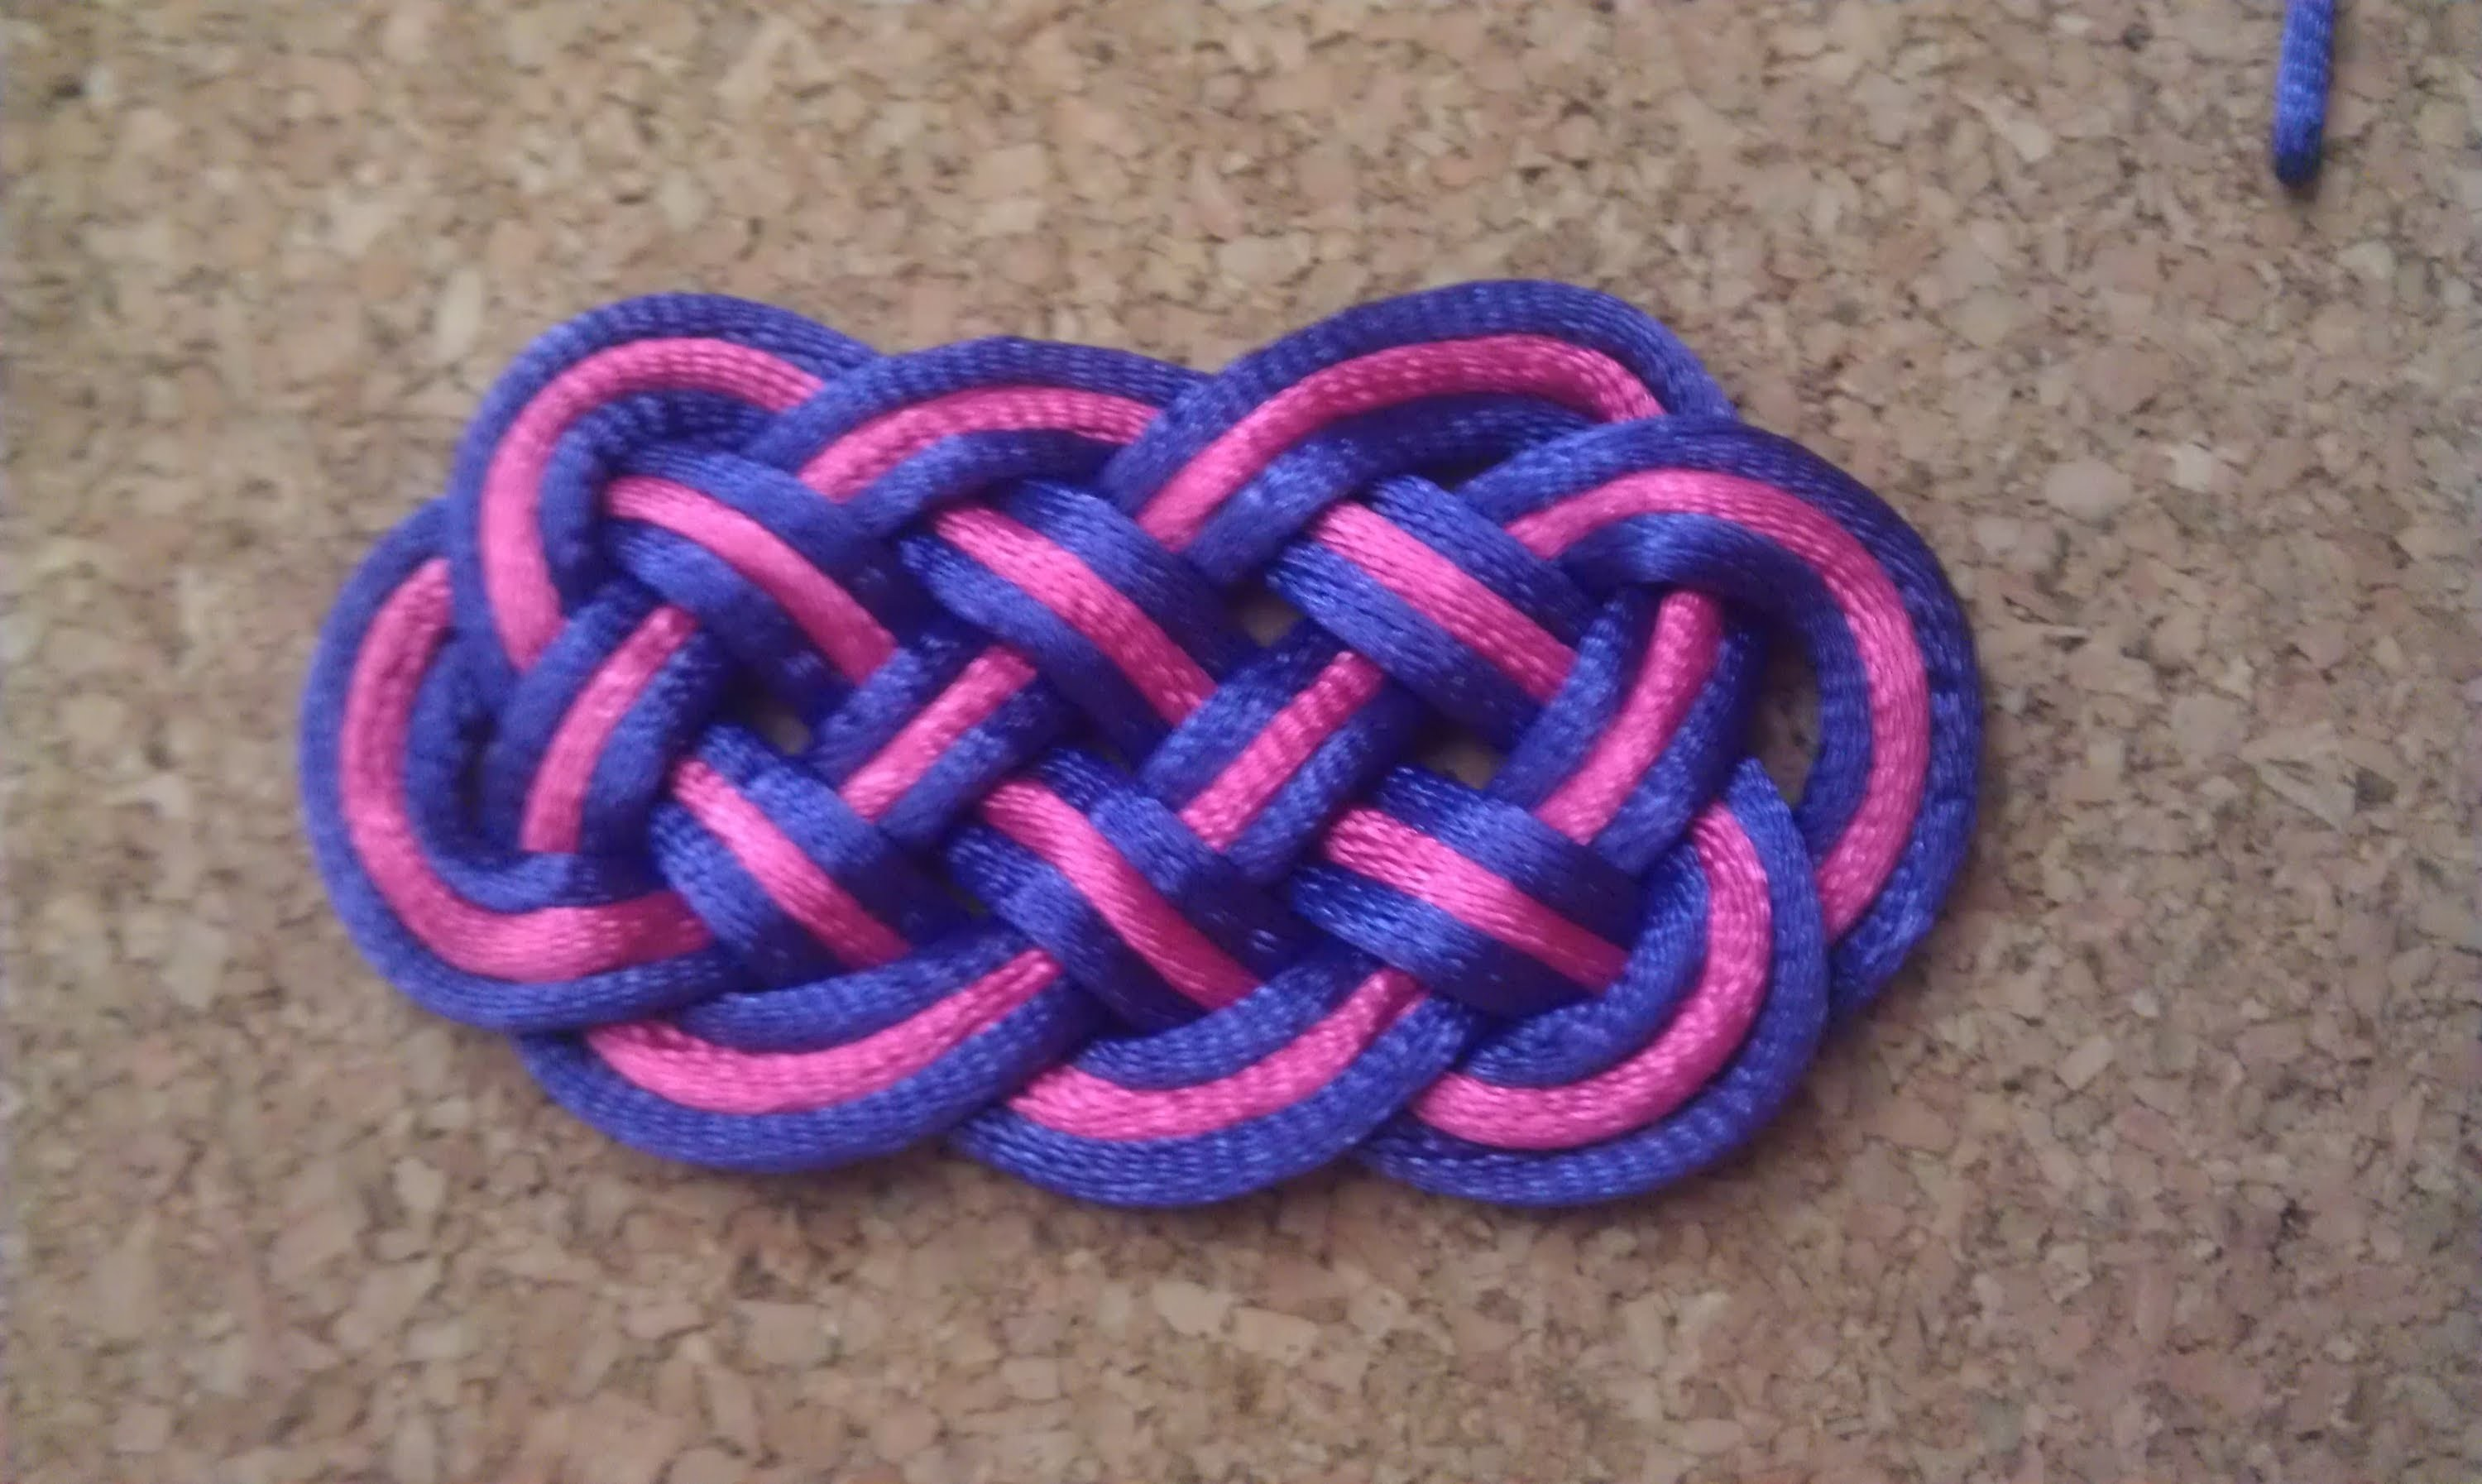 Nudo chino o pallete de ocho puntas. eight-pointed knot